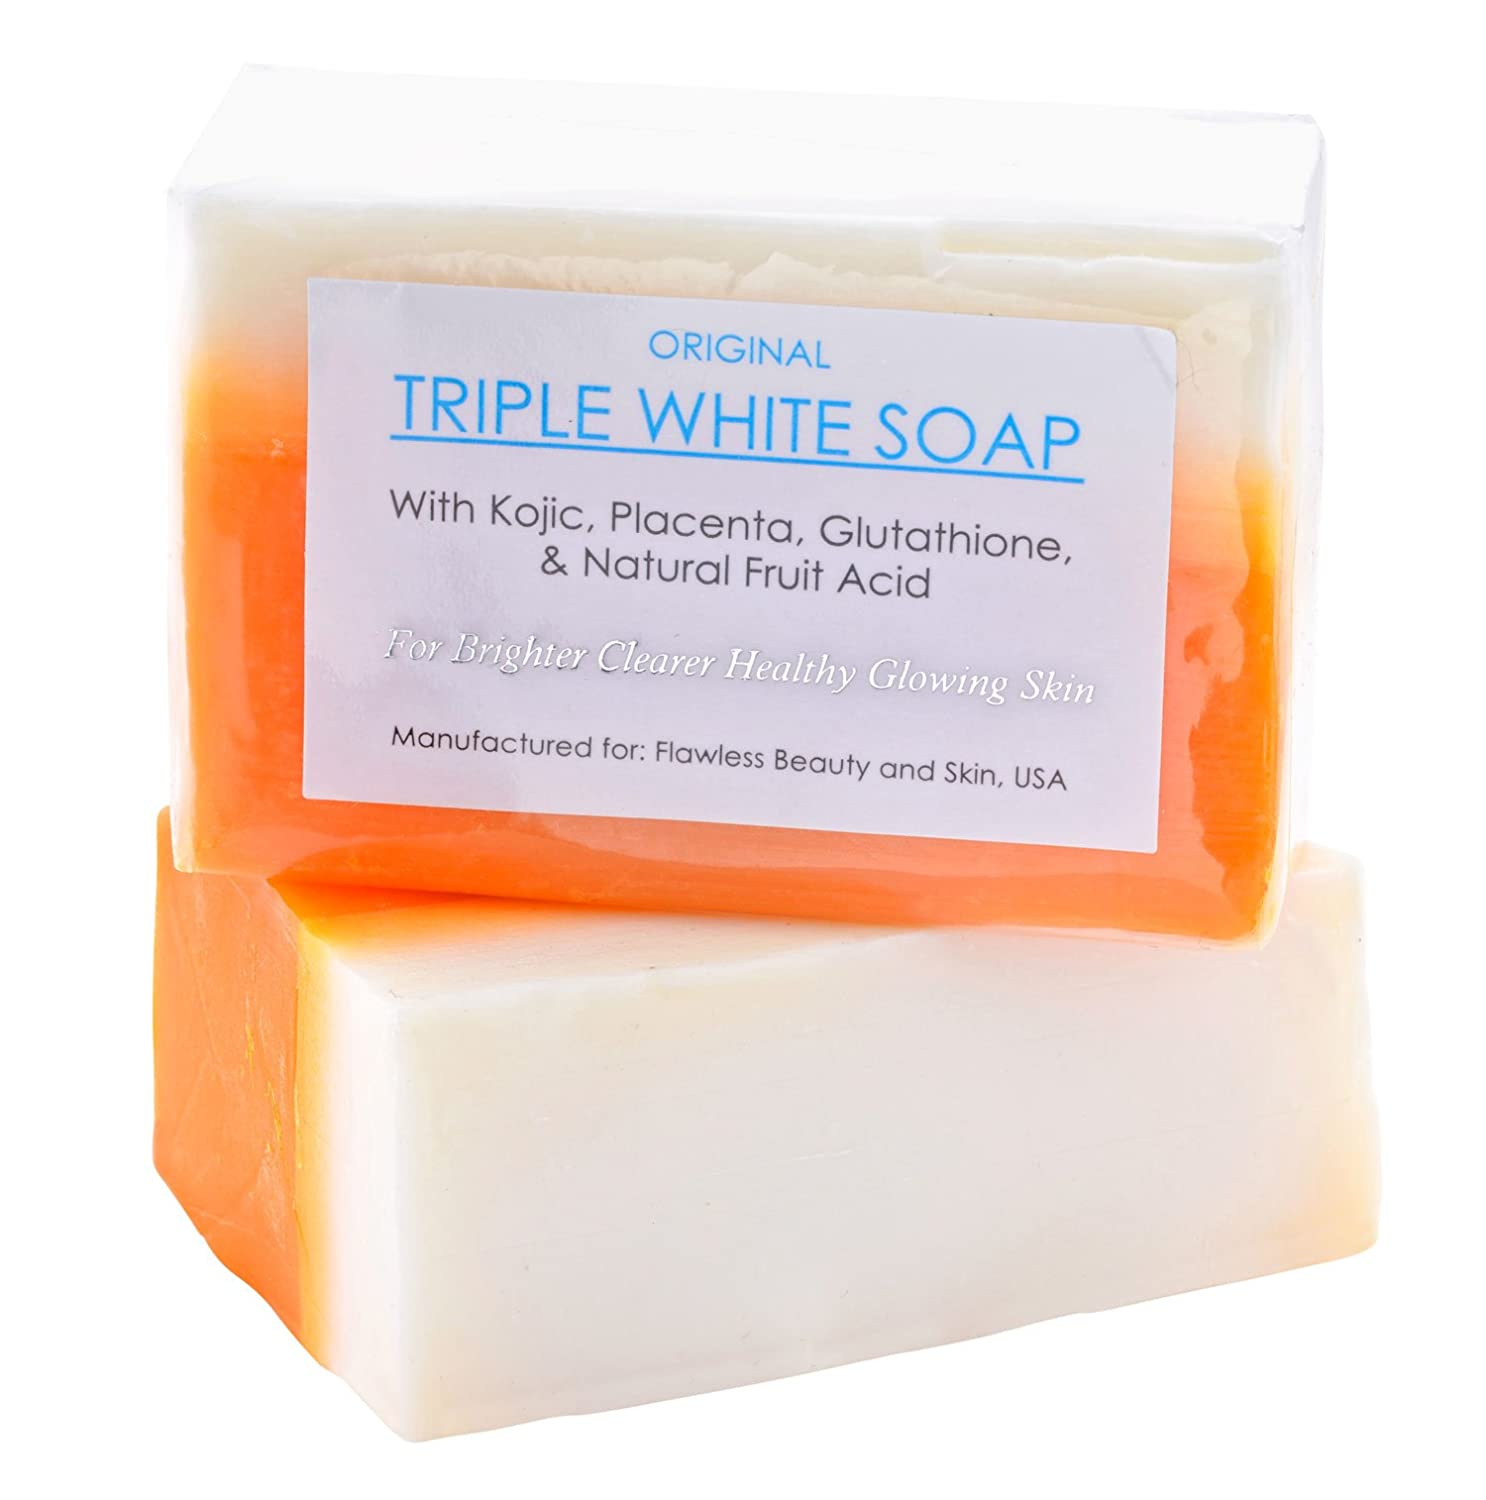 Kojic Acid, Placenta, Glutathione Triple Whitening/bleaching Soap Appx. 150gms